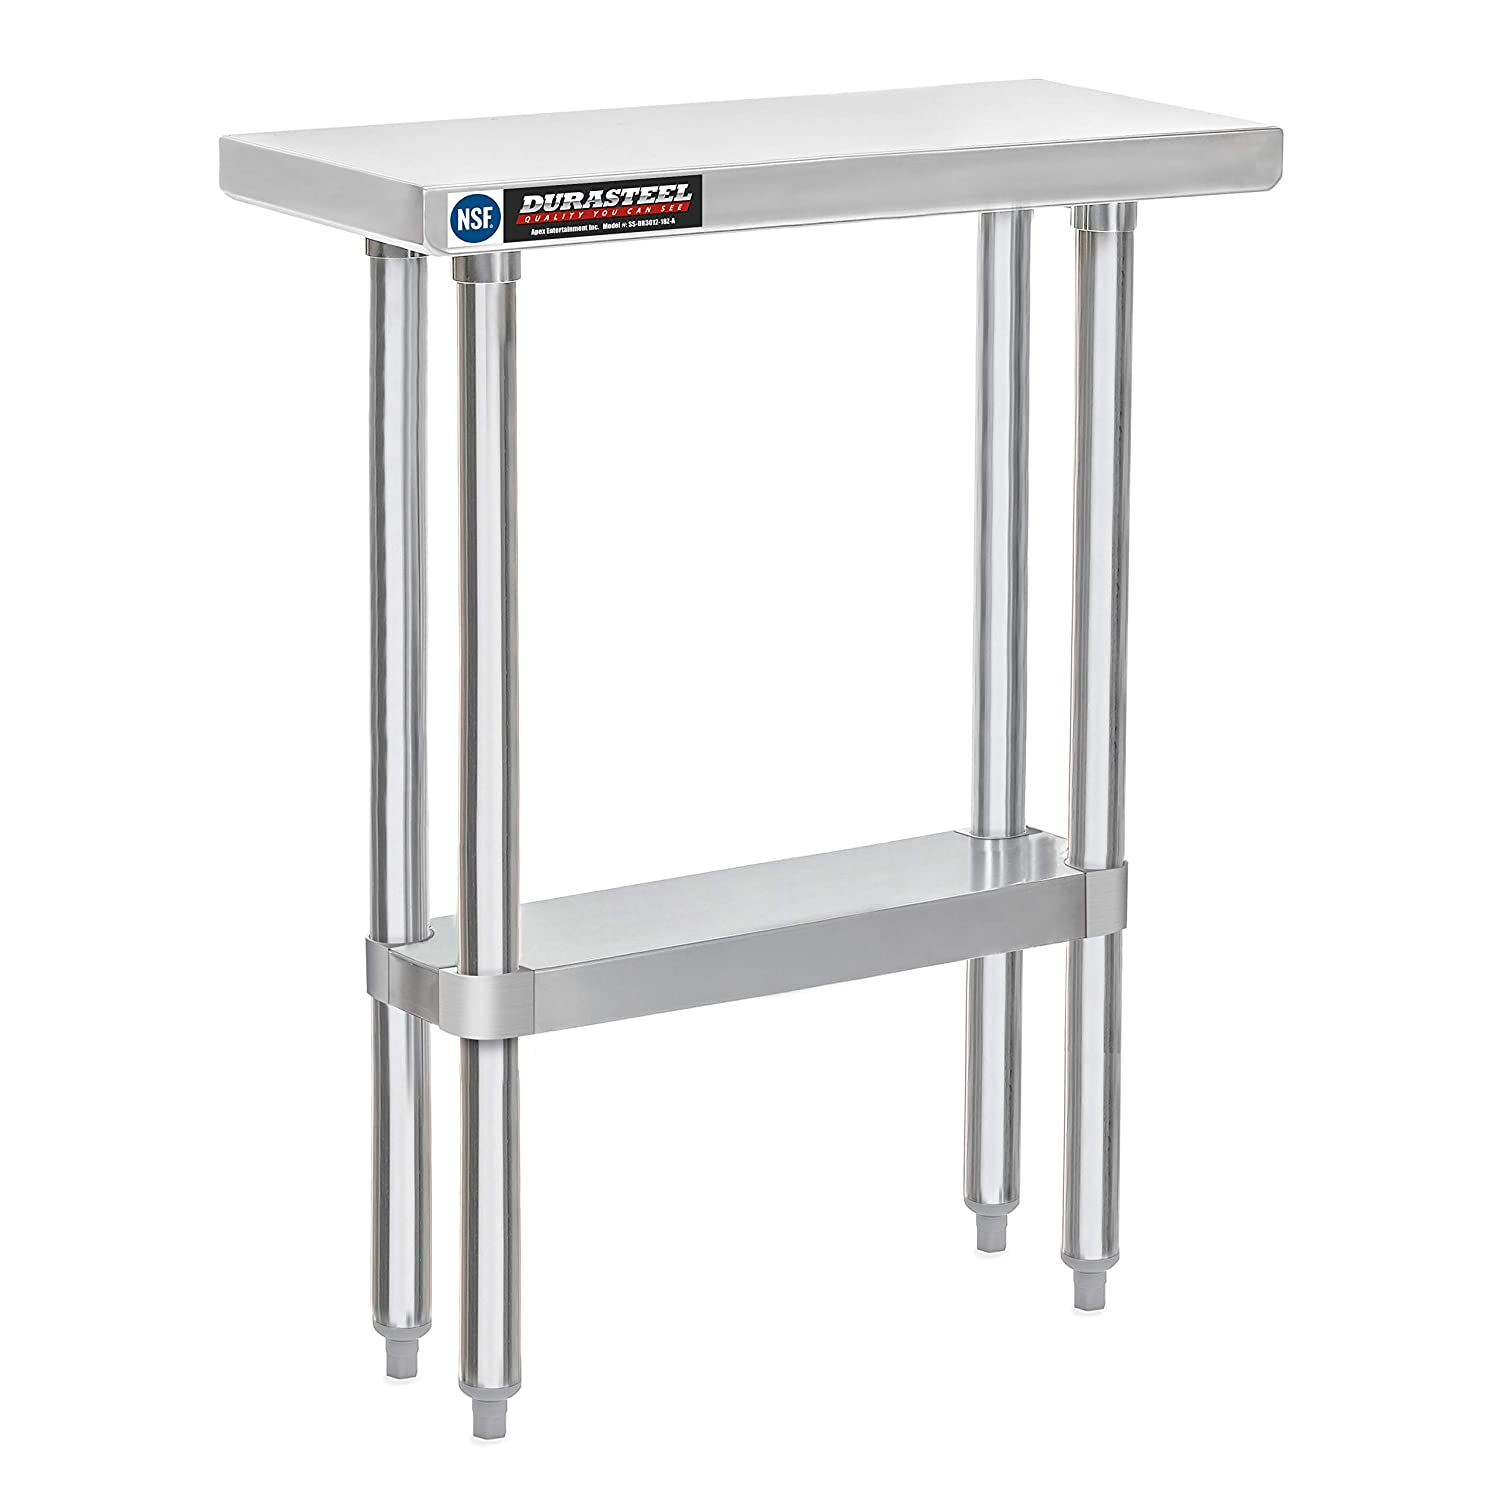 "DuraSteel Stainless Steel Commercial Food Prep Work Table 30"" x 12"" x 34"" Height w/Die Cast Corner Brackets - NSF Certified - Fits for use in Restaurant, Business, Warehouse, Home, Kitchen, Garage"